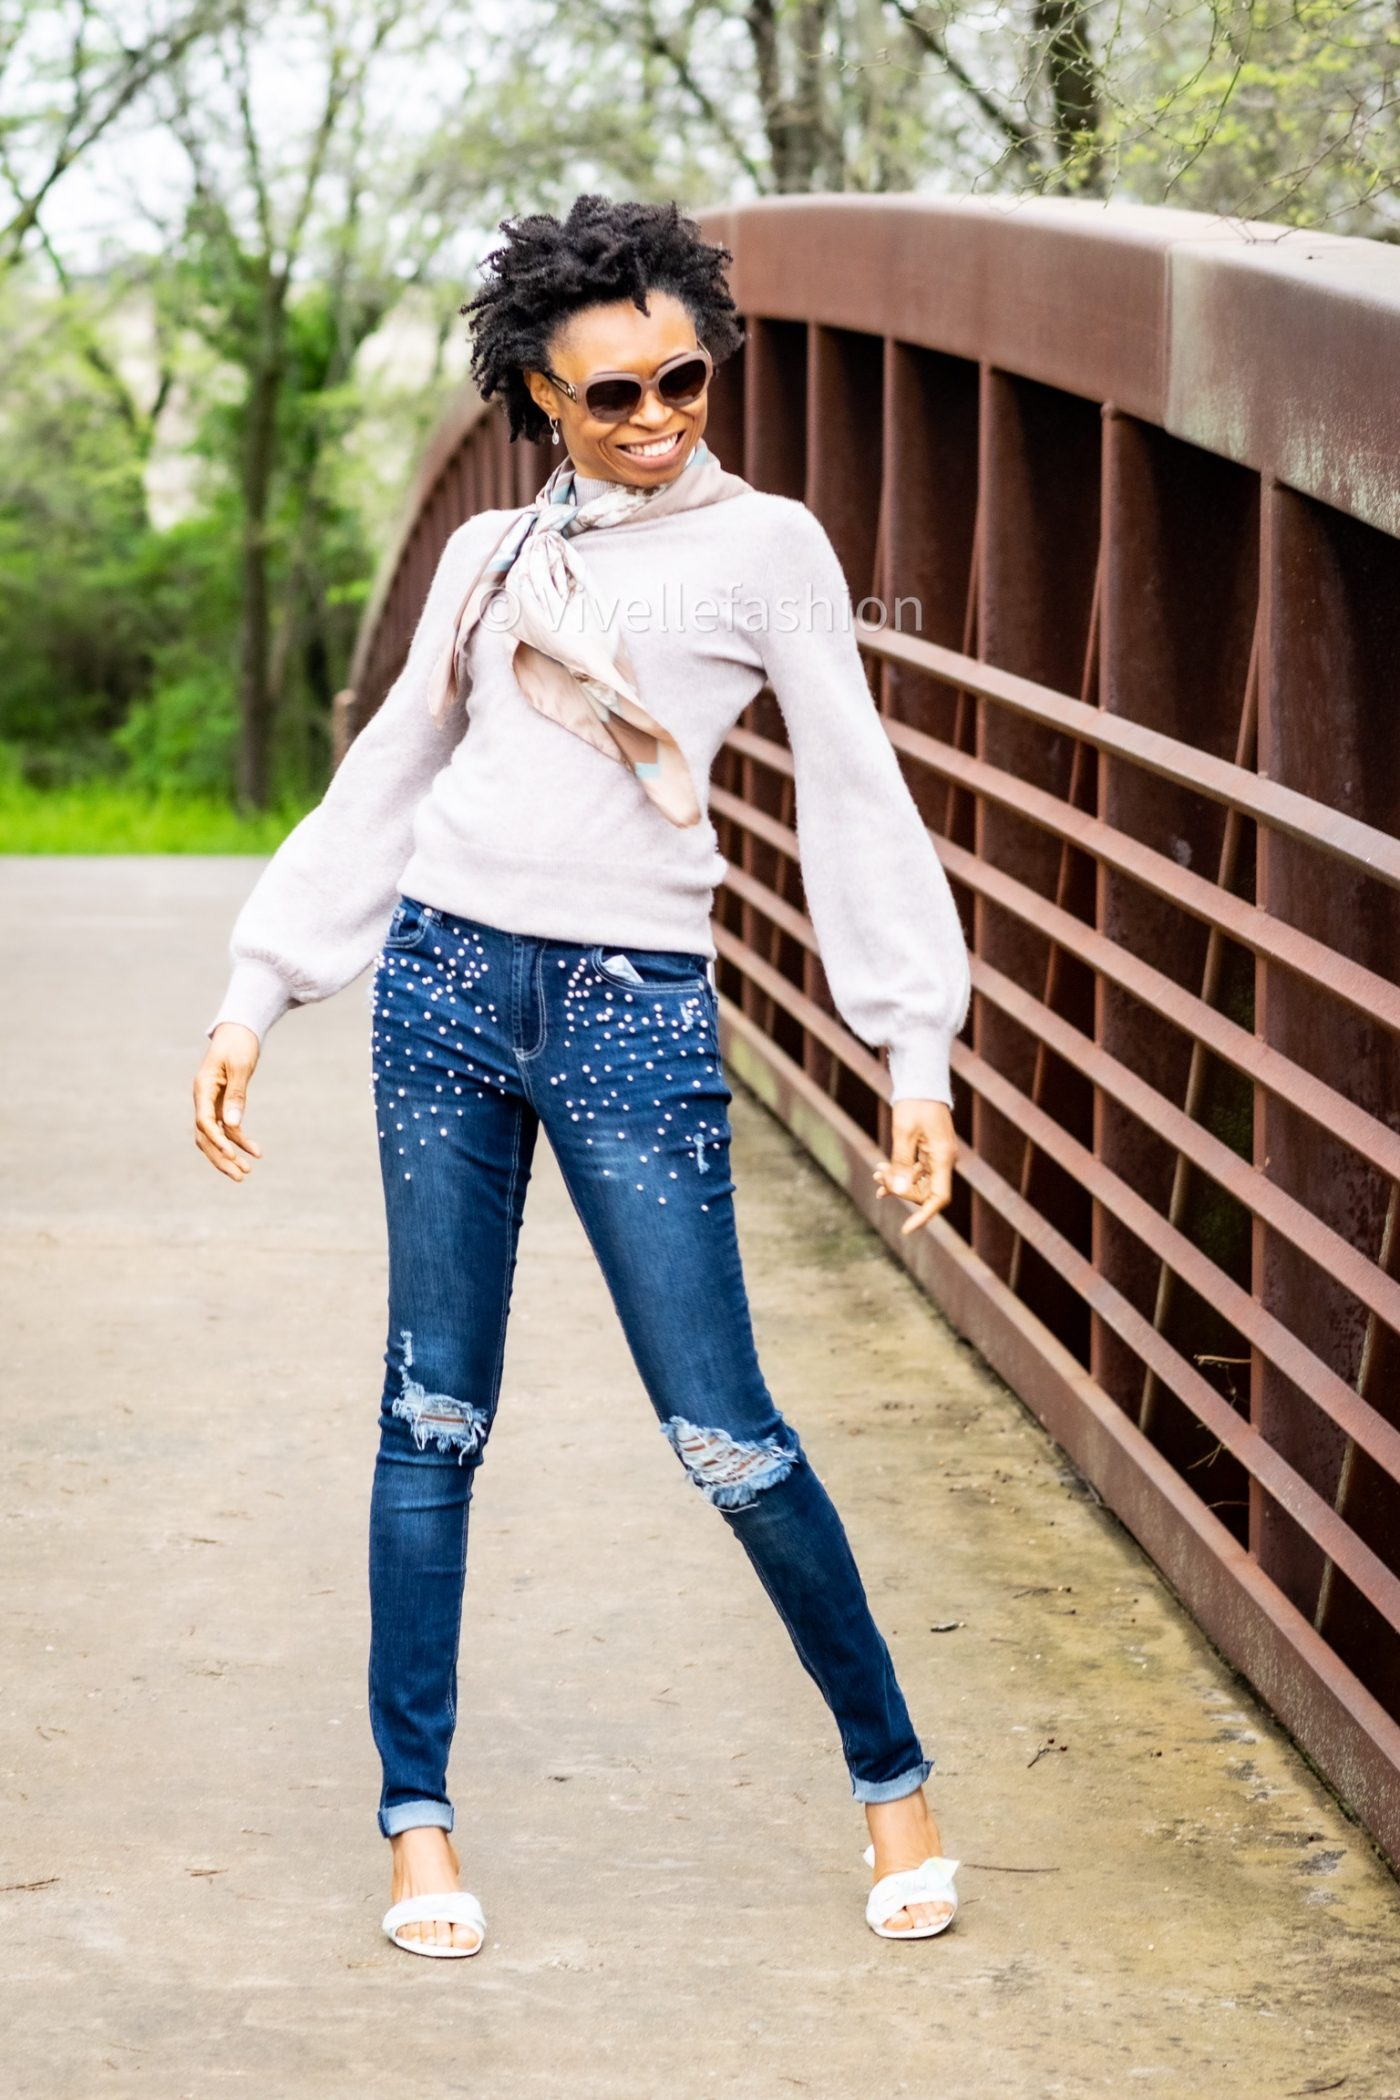 Pearl embellished jeans and cashmere sweater for fall